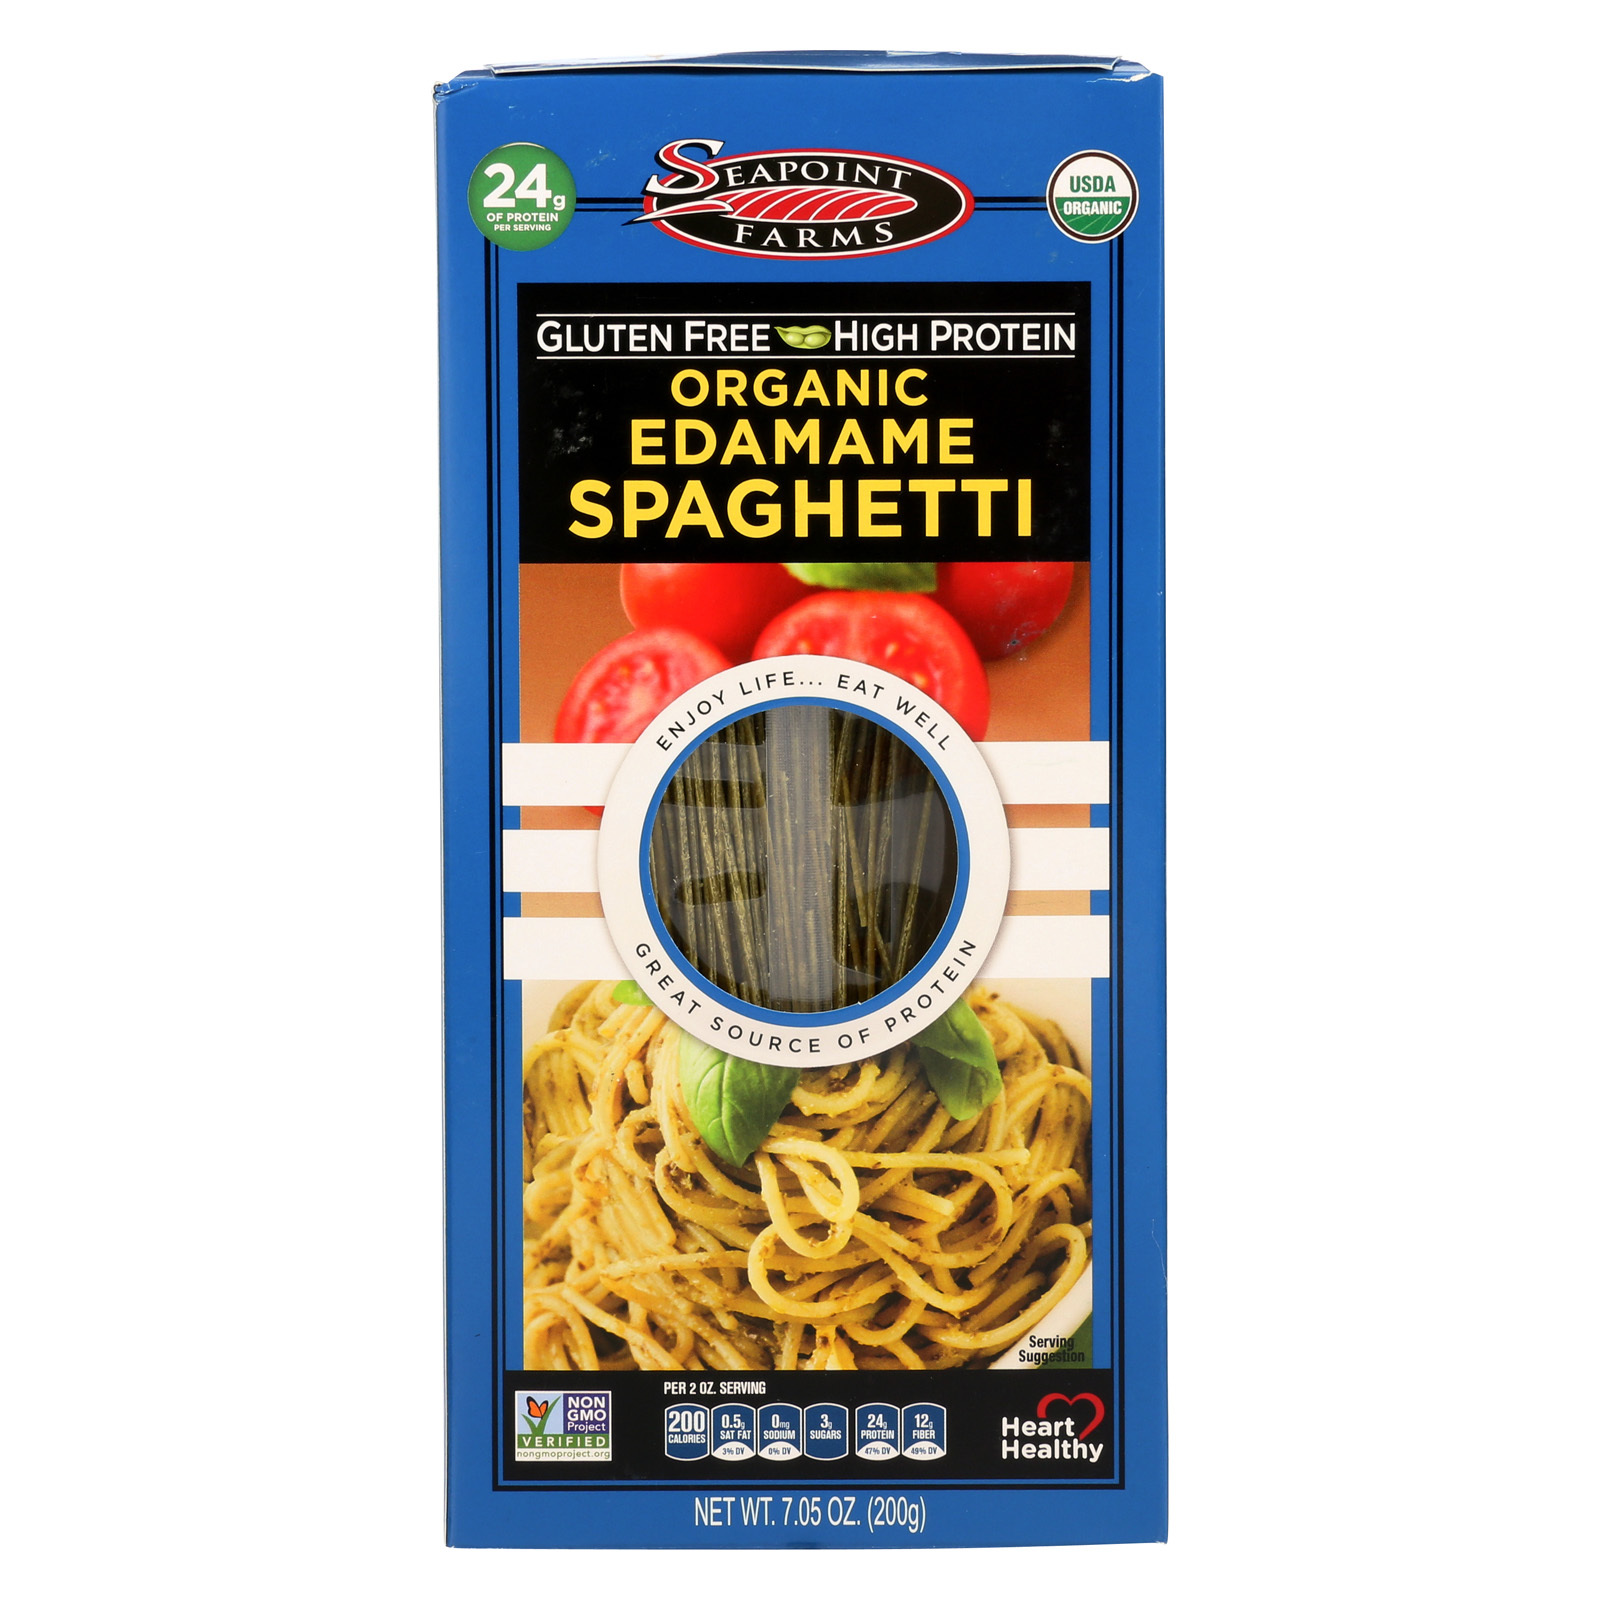 Seapoint Farms Edamame Spaghetti - Case of 12 - 7.5 oz.